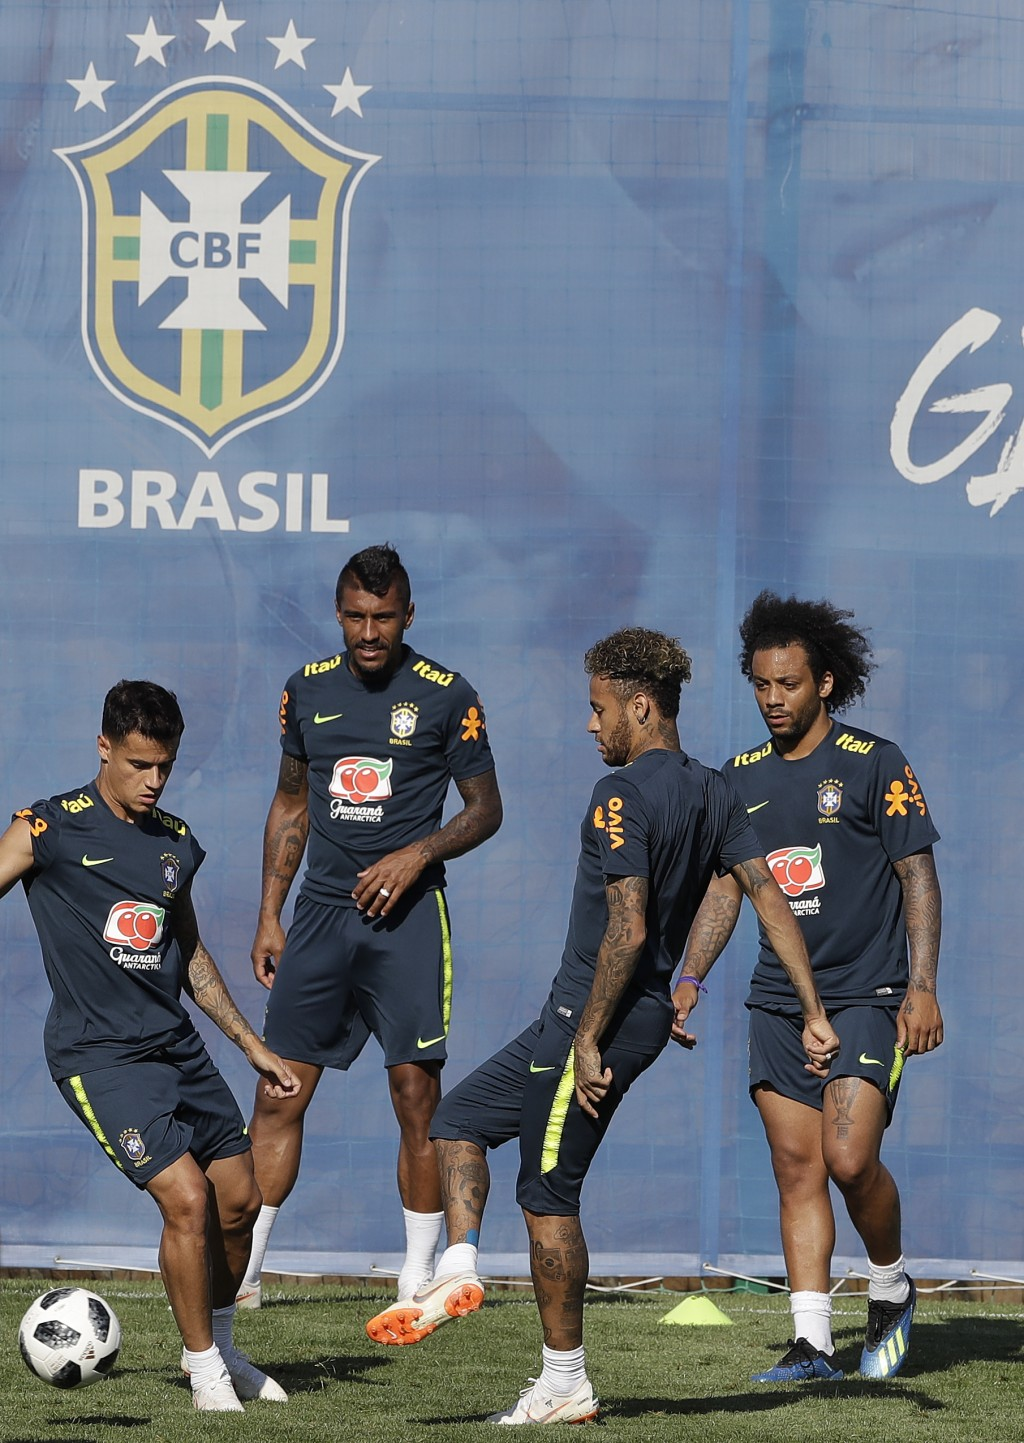 Brazil's soccer players from left, Philippe Coutinho, Paulinho, Neymar, and Marcelo, practice during a training session in Sochi, Russia, Wednesday, J